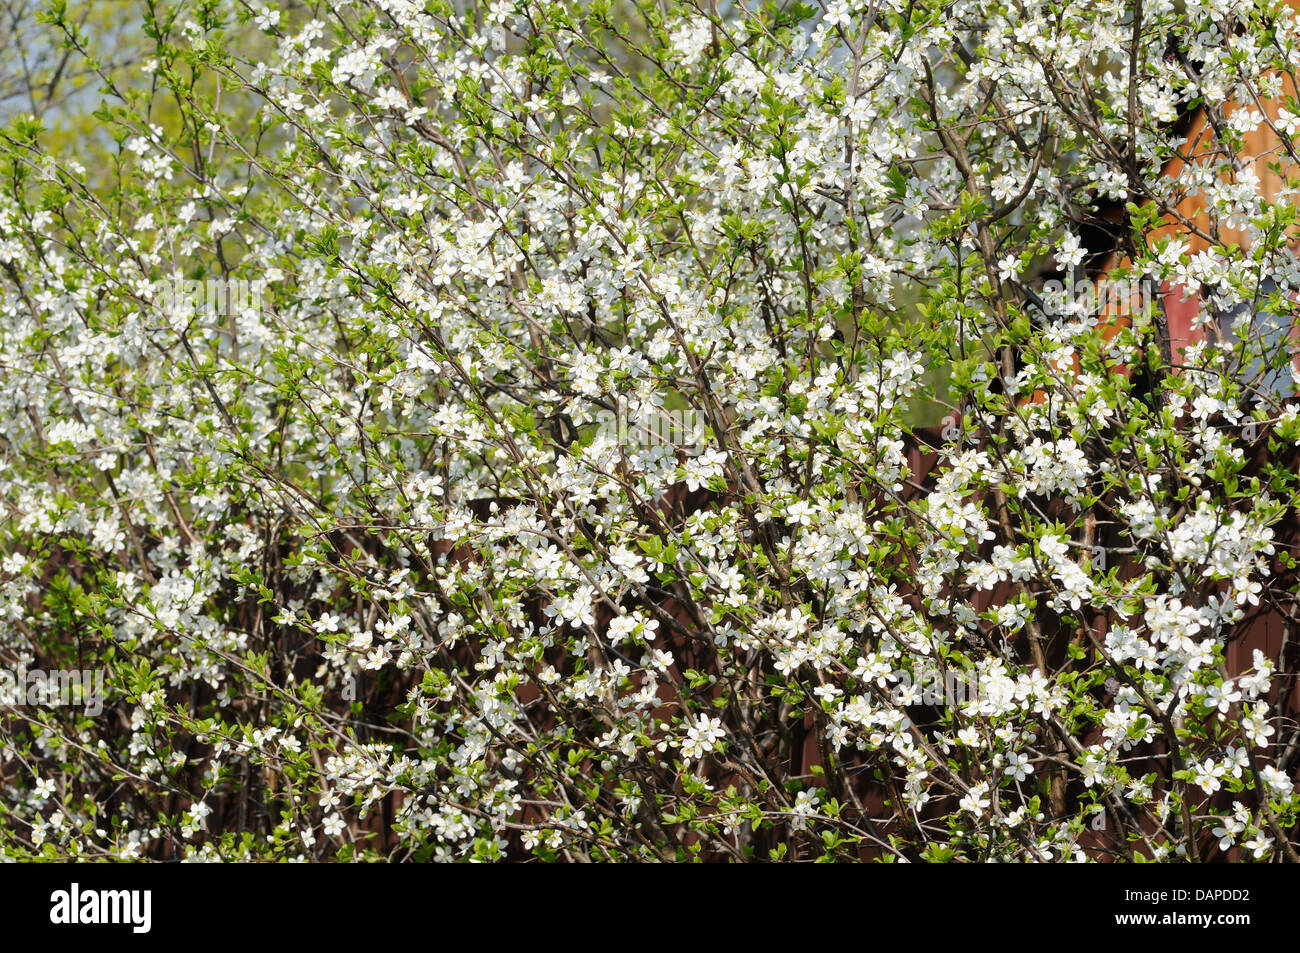 Bush with small white flowers stock photos bush with small white many small white flowers bloom on the bush of blackthorn stock image mightylinksfo